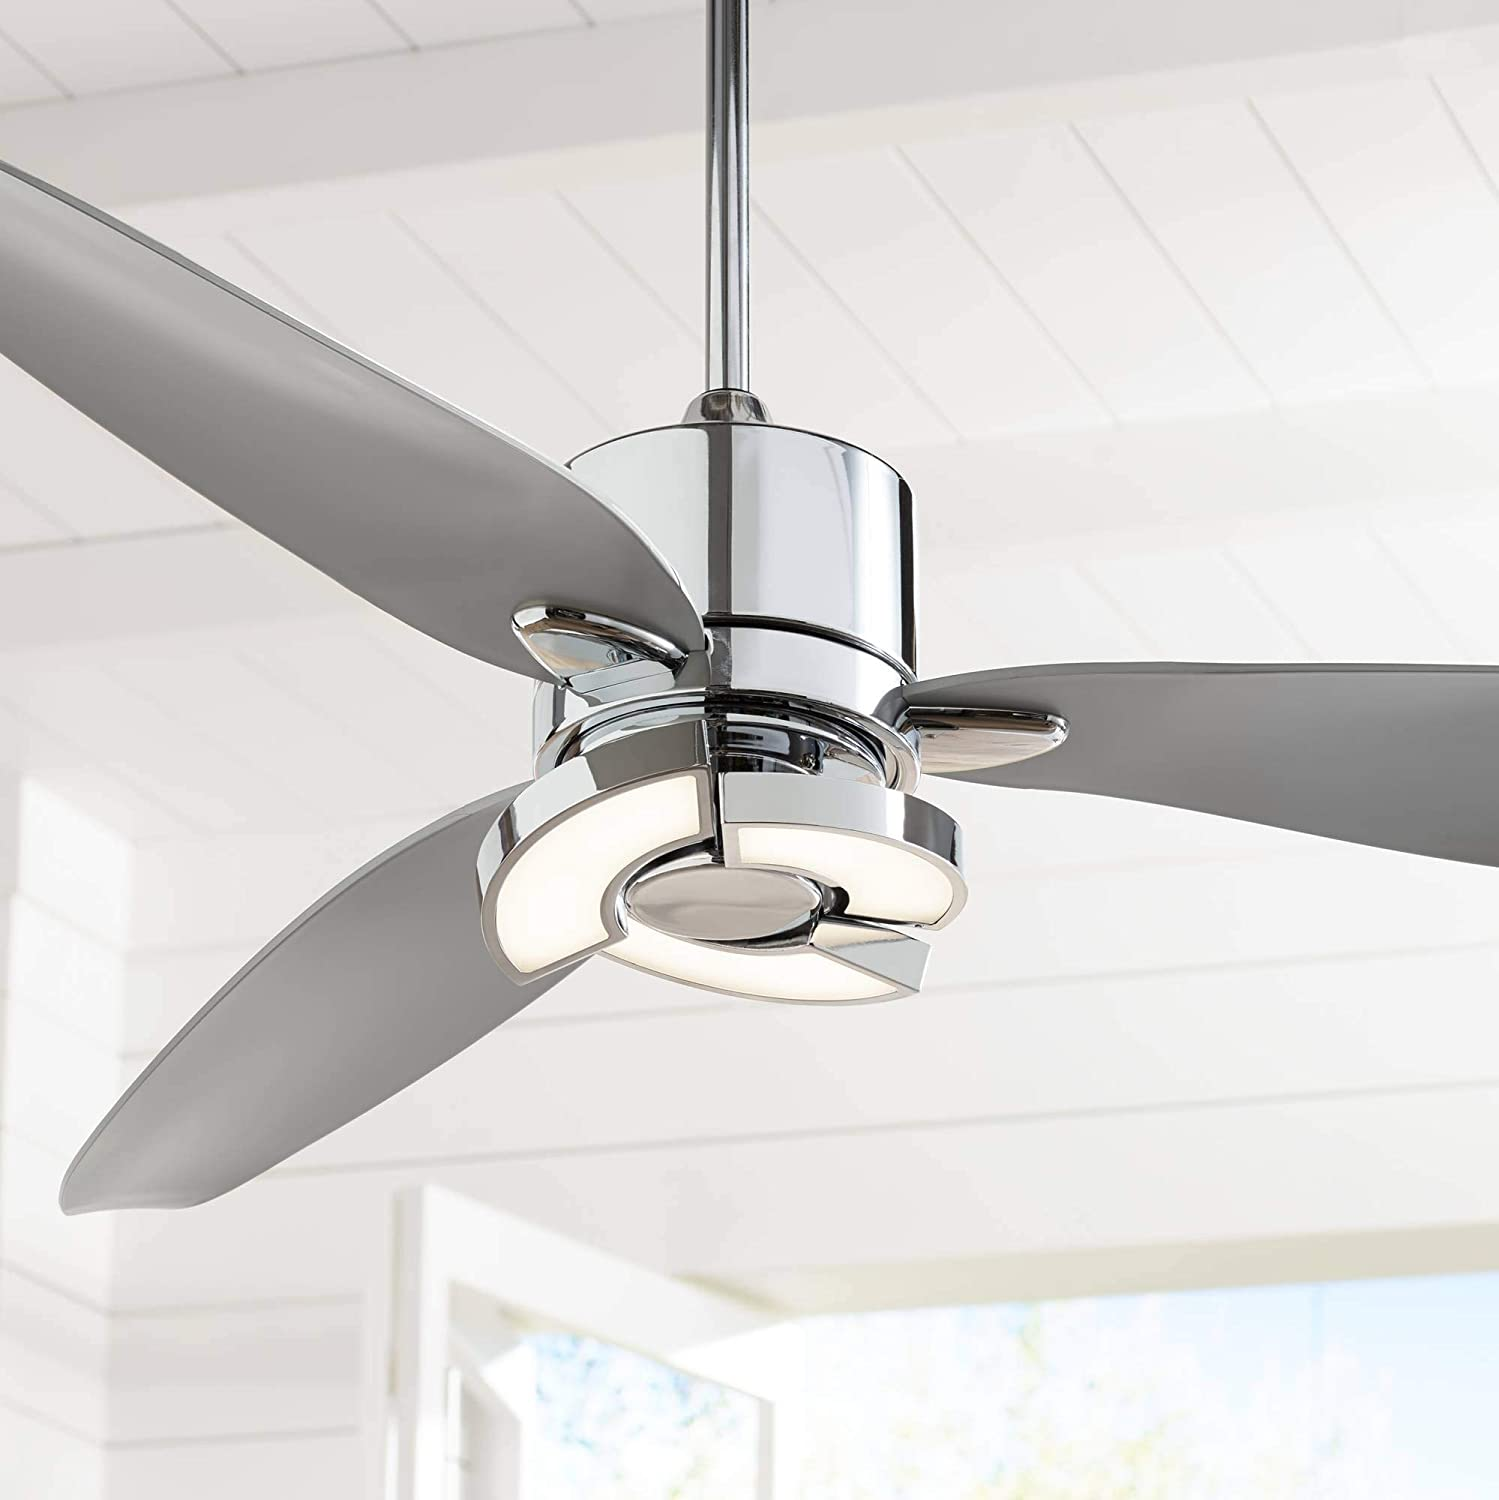 56 Vengeance Modern Ceiling Fan With Light Led Remote Control Chrome Curved Blades For Living Room Kitchen Bedroom Possini Euro Design Amazon Com